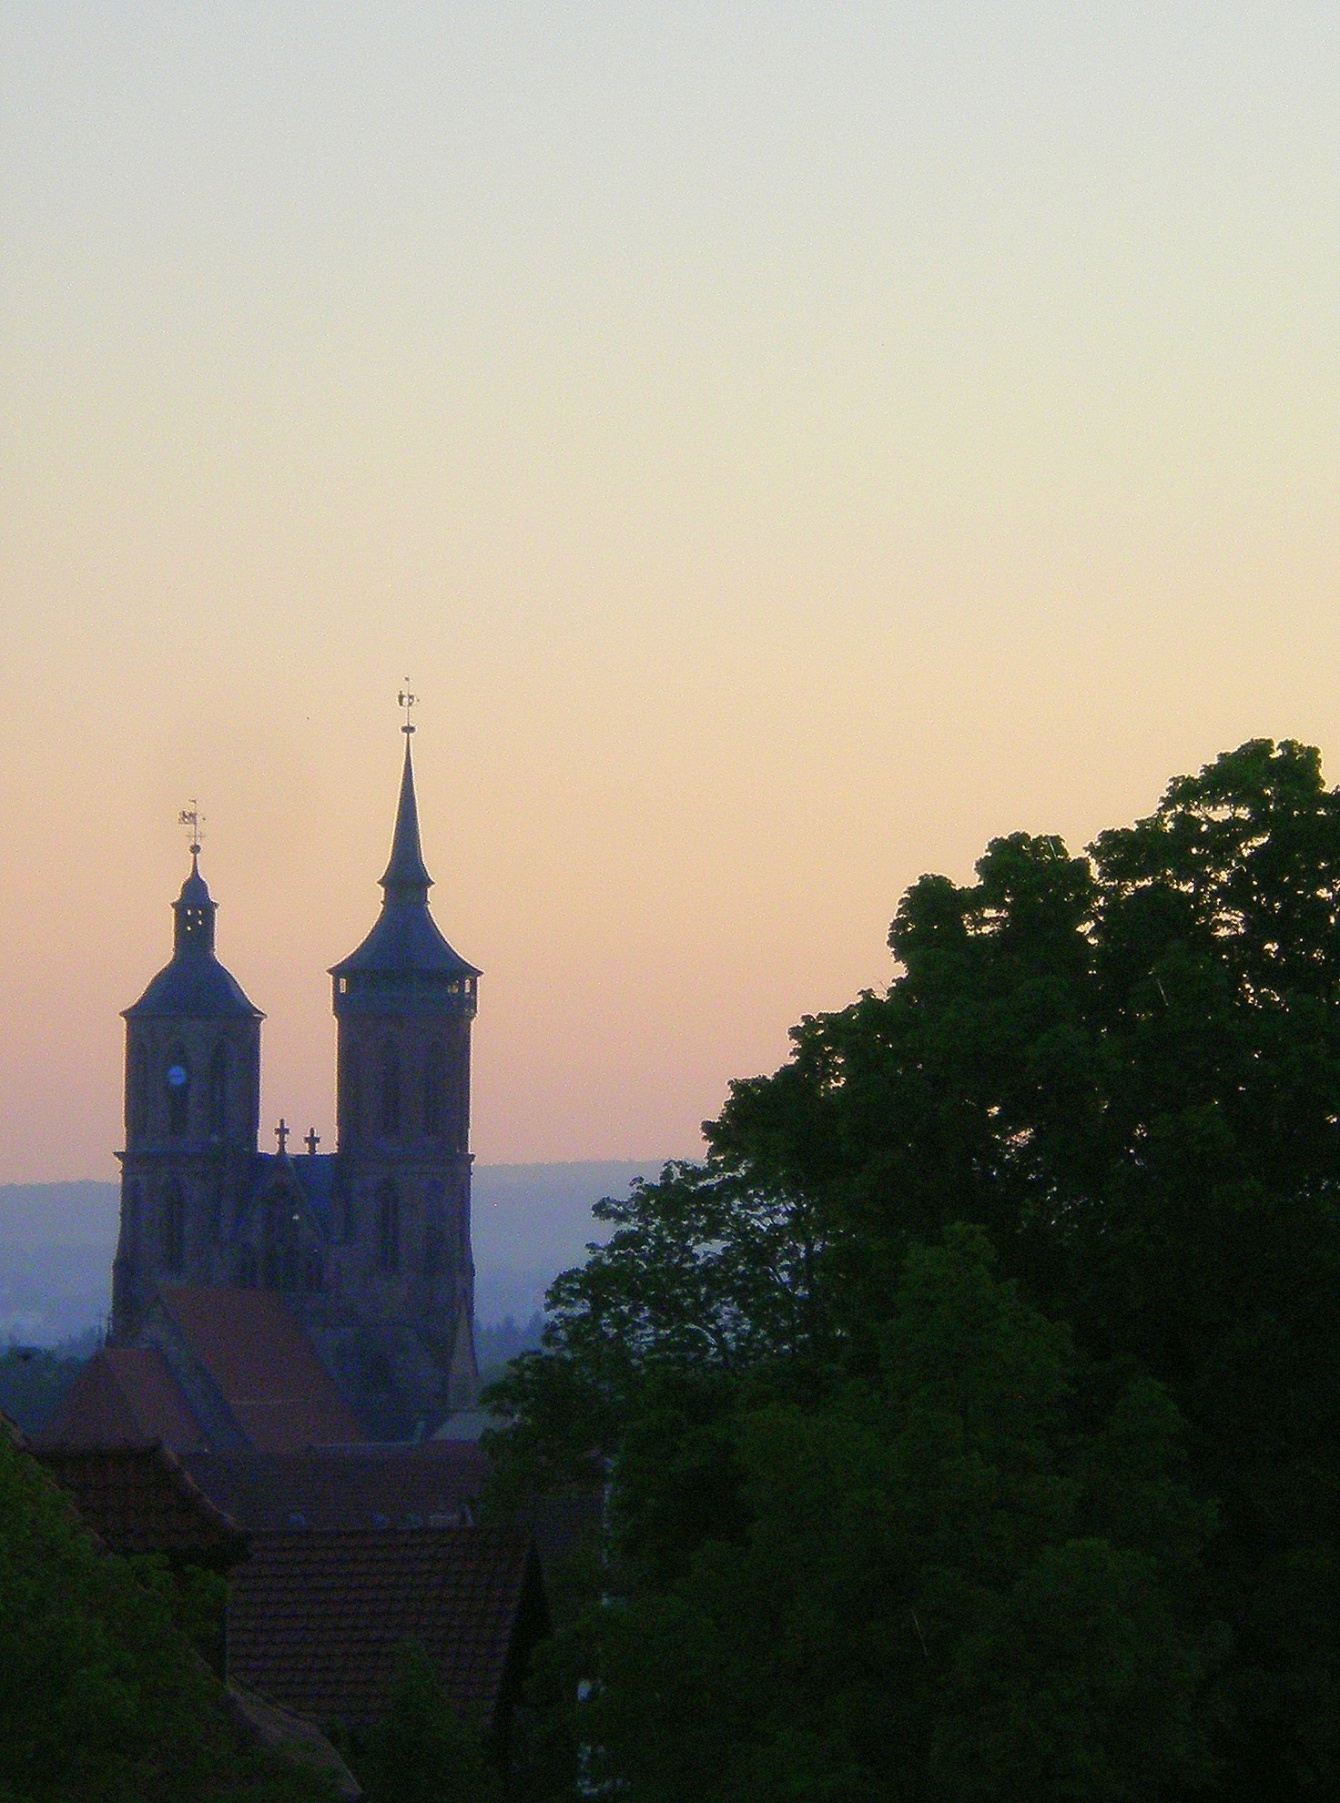 Nikolaikirche towers from Gottingen's Stadthalle, photo by David Nice